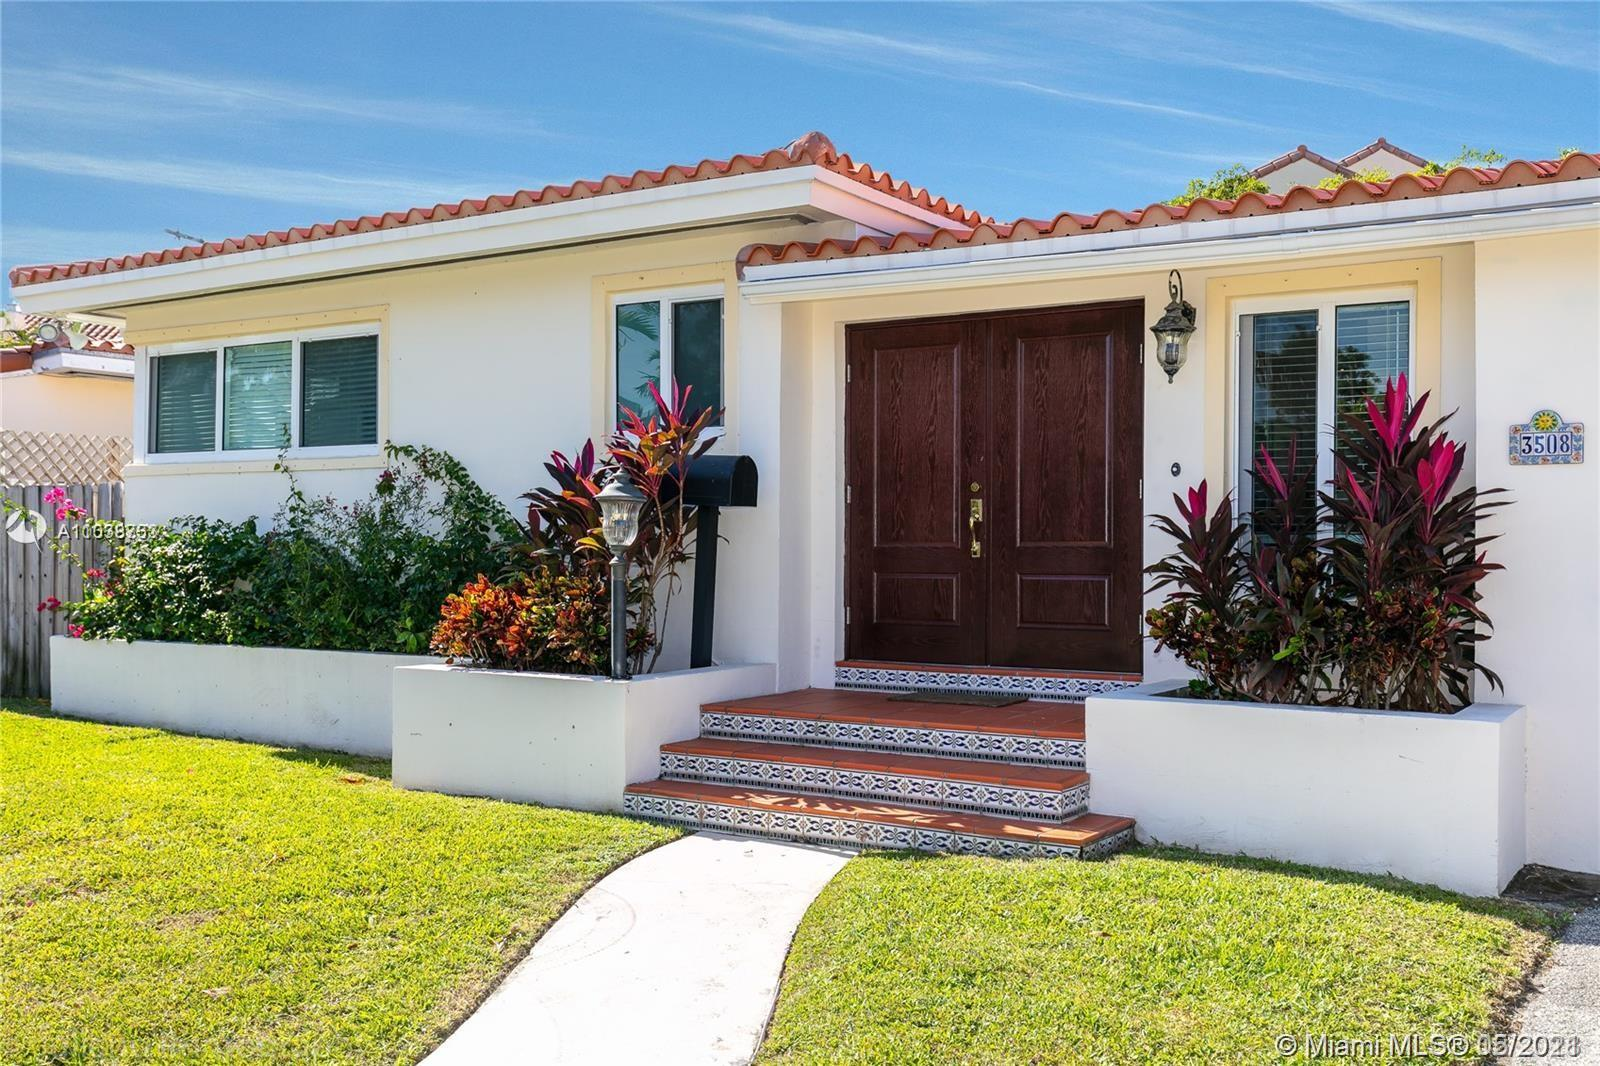 Beautiful house in the most prestigious NE Coconut Grove location! Steps away from the bay, enjoy the perks of an unbeatable location, which includes a short walk to Kennedy Park & Cocowalk. All impact windows, remodeled kitchen, POOL and much more! Crystal View Ct is a very calm dead end street, perfect location close to everything you need, 5' to Brickell, 15' to Miami Airport, steps away from Mercy Hospital and best schools in town, easy access to I-95 and US1.